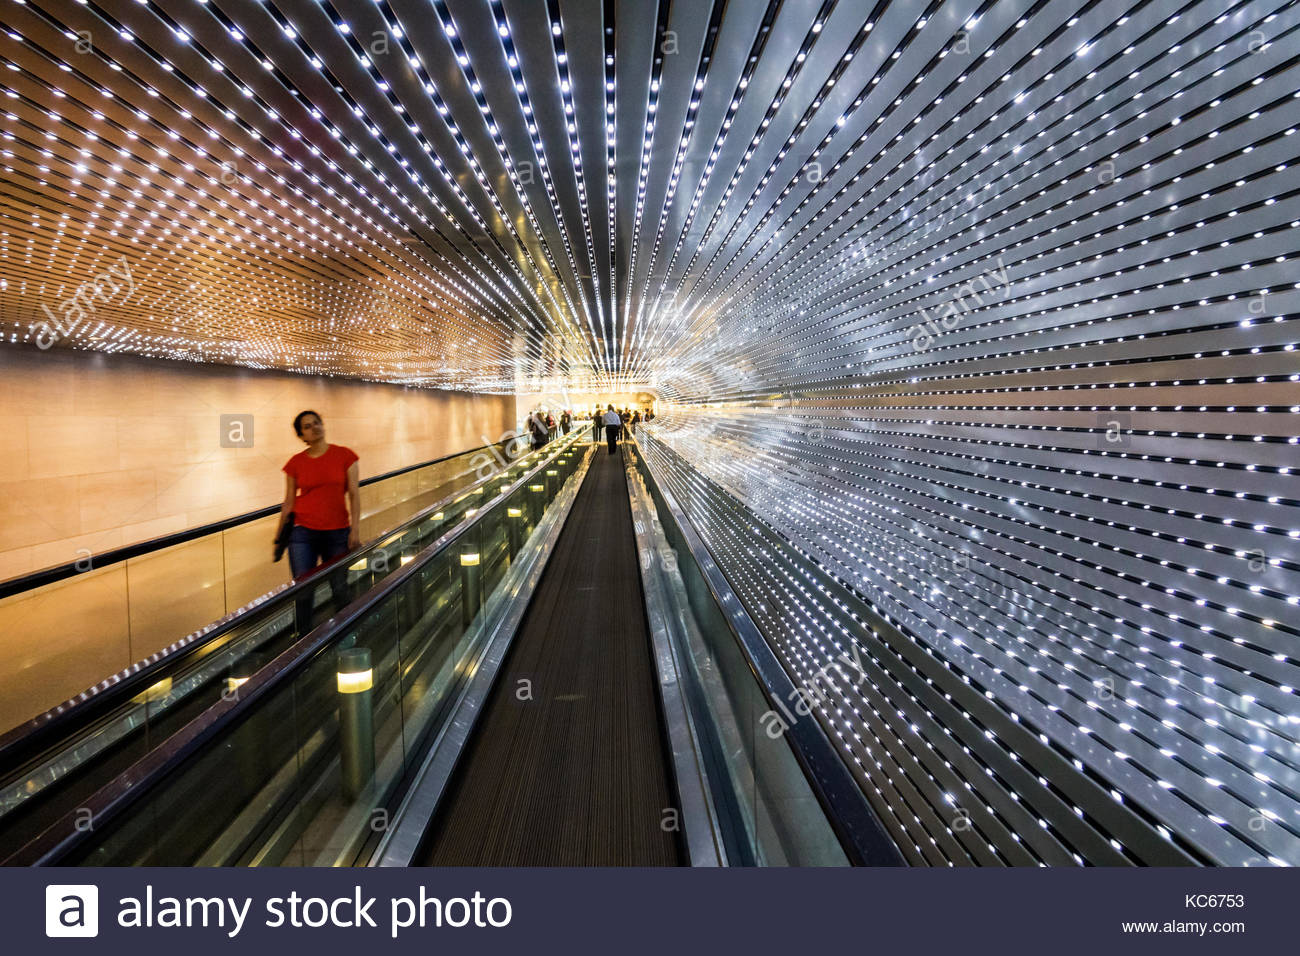 Washington DC District of Columbia National Gallery of Art museum Concourse underground walkway Multiverse light - Stock Image